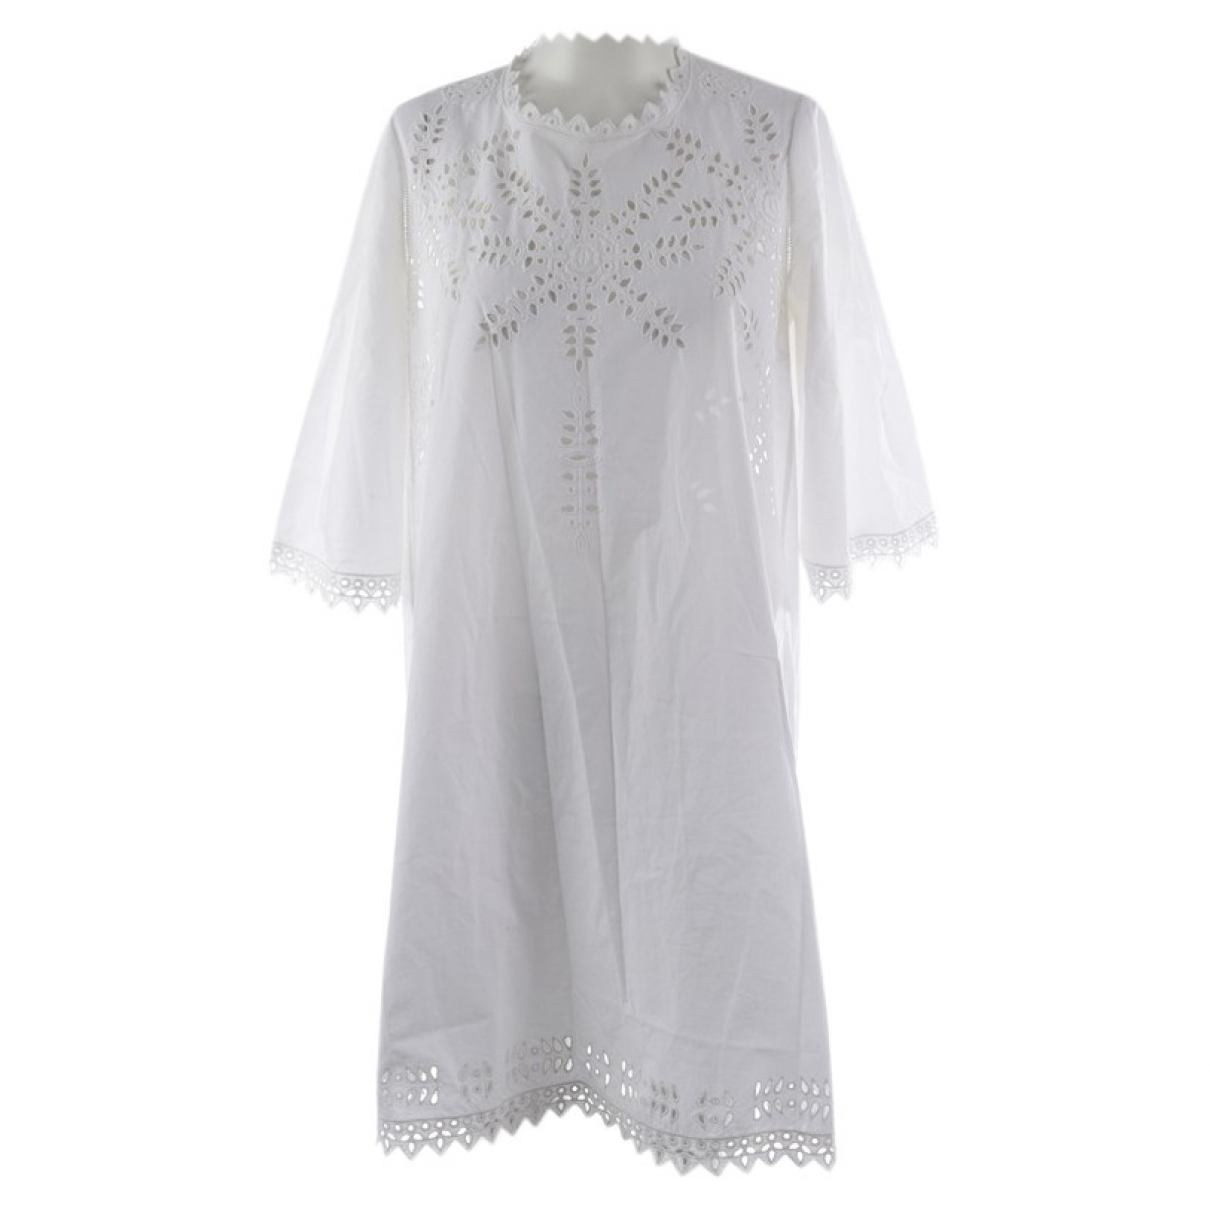 Isabel Marant Etoile N White Cotton dress for Women 36 FR